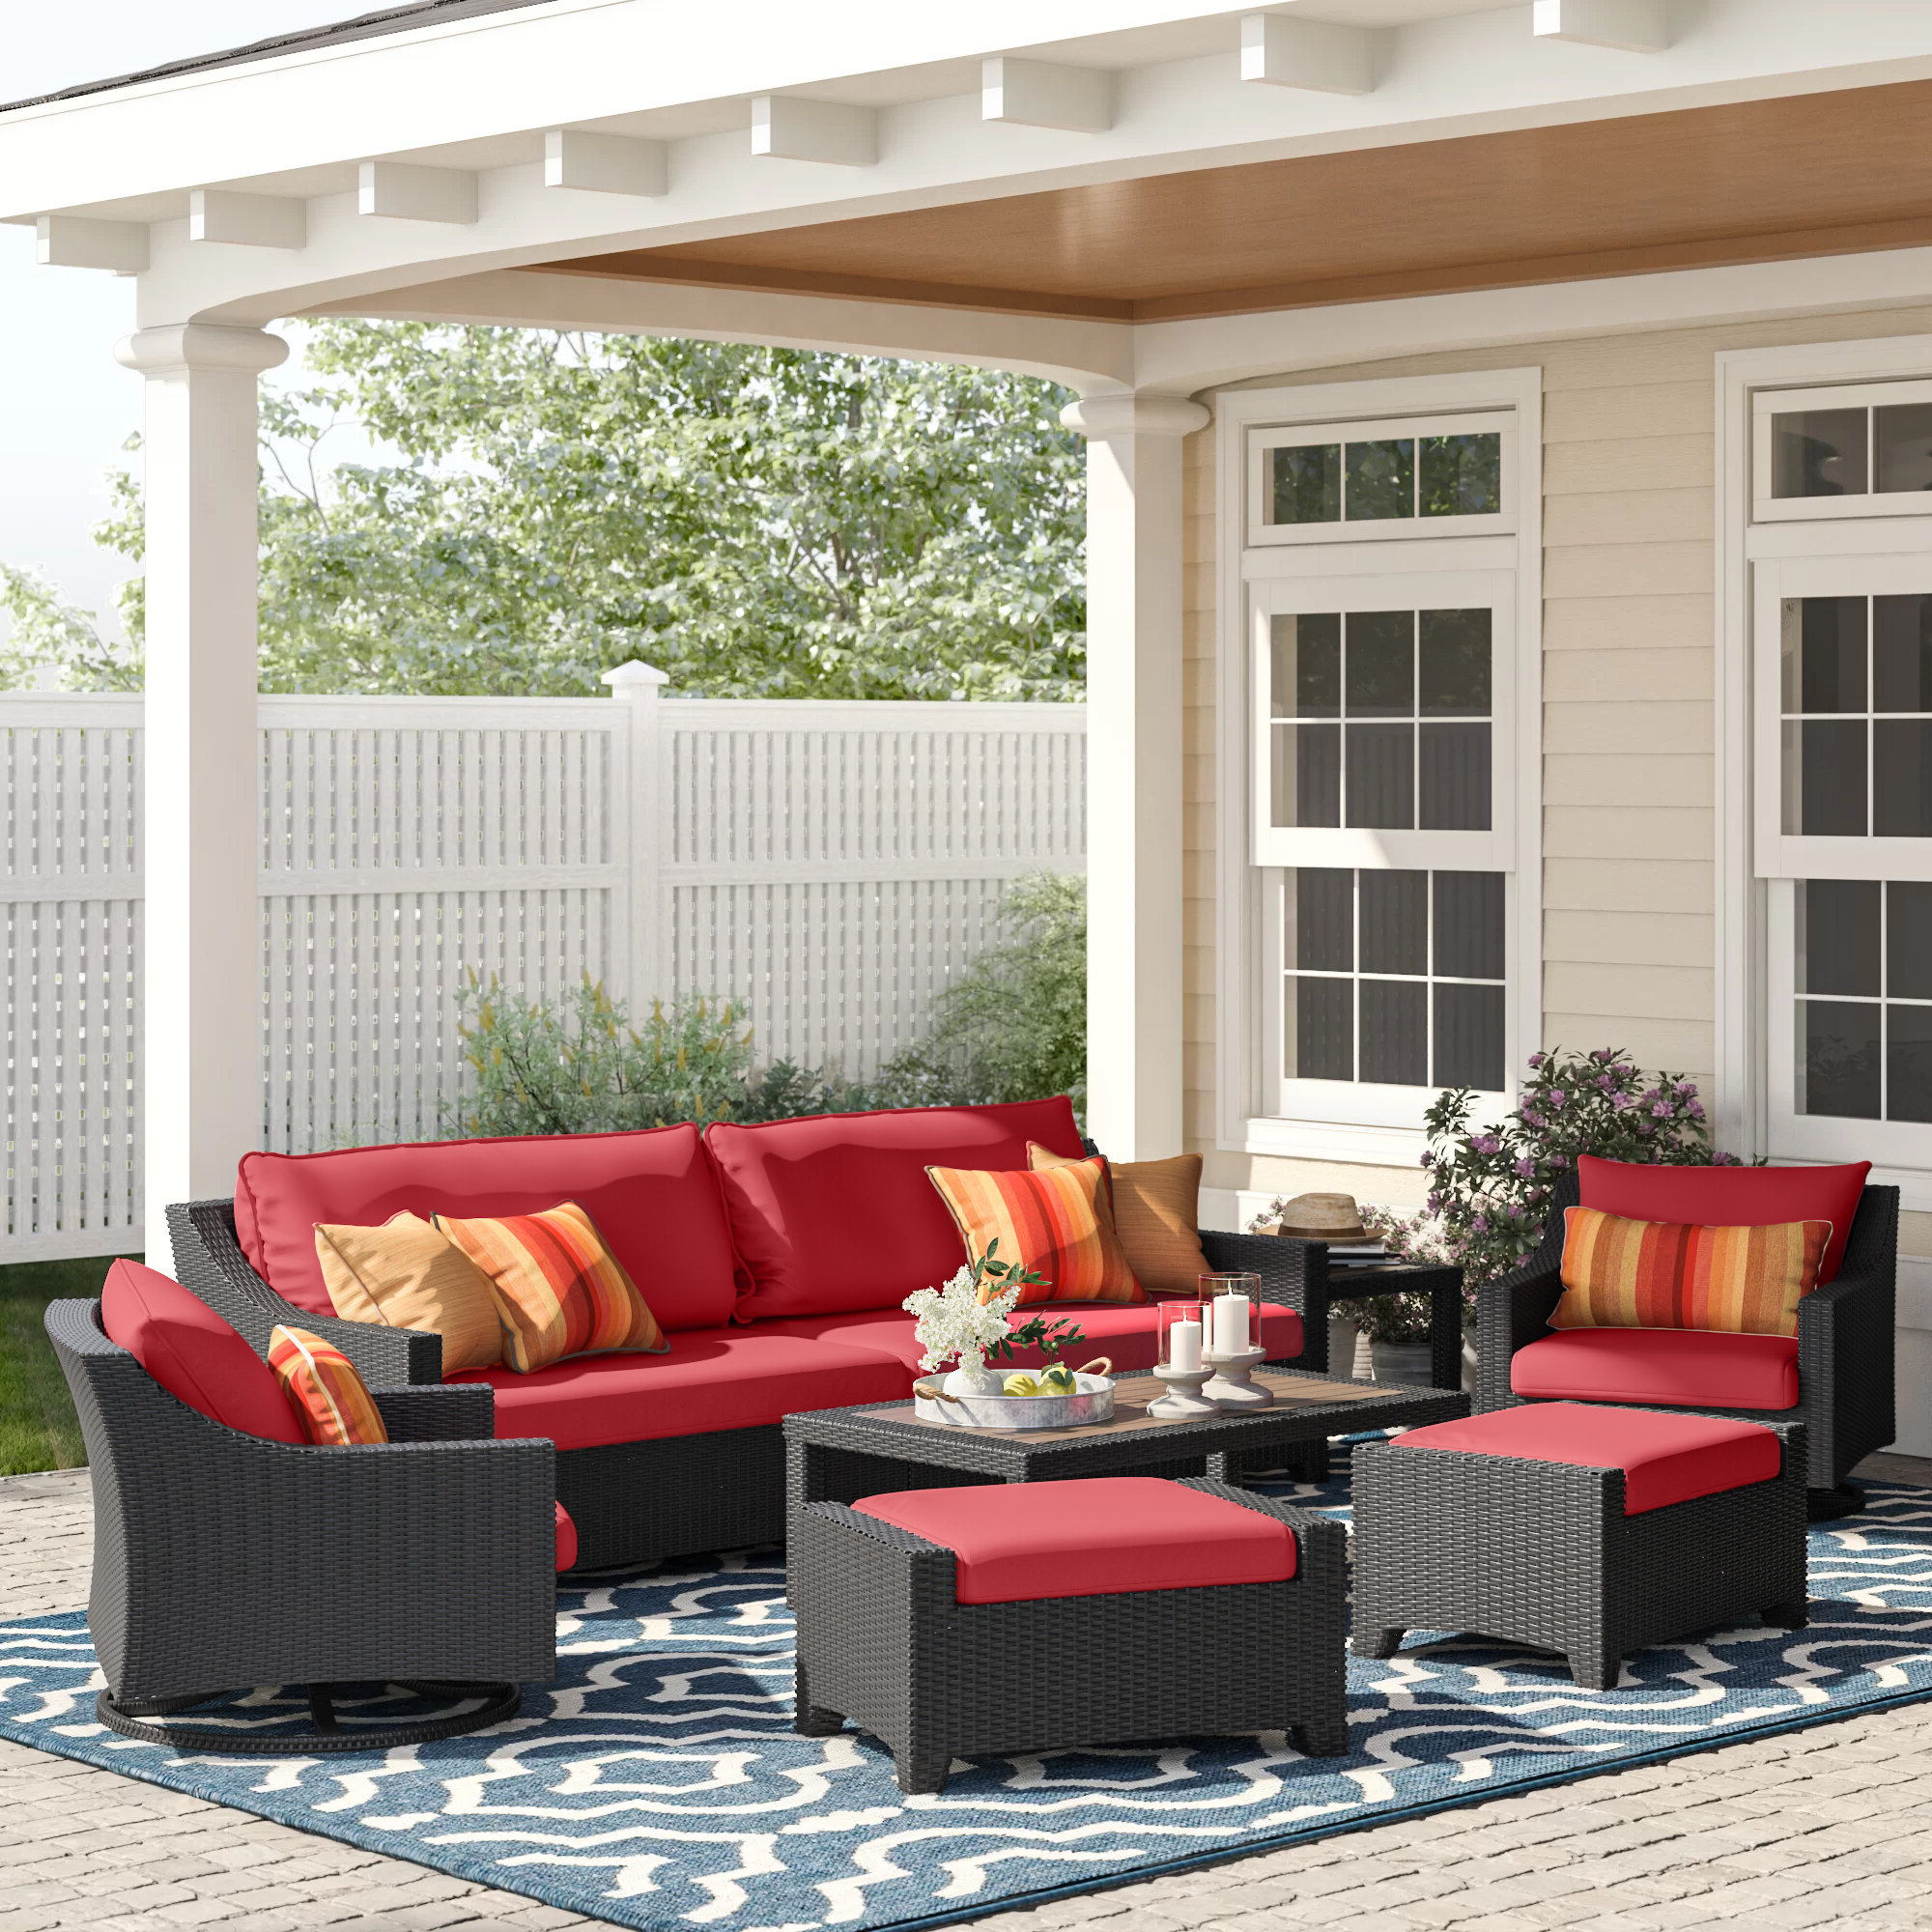 Recent Northridge 8 Piece Sofa Set With Cushions With Regard To Northridge Patio Sofas With Sunbrella Cushions (View 18 of 20)